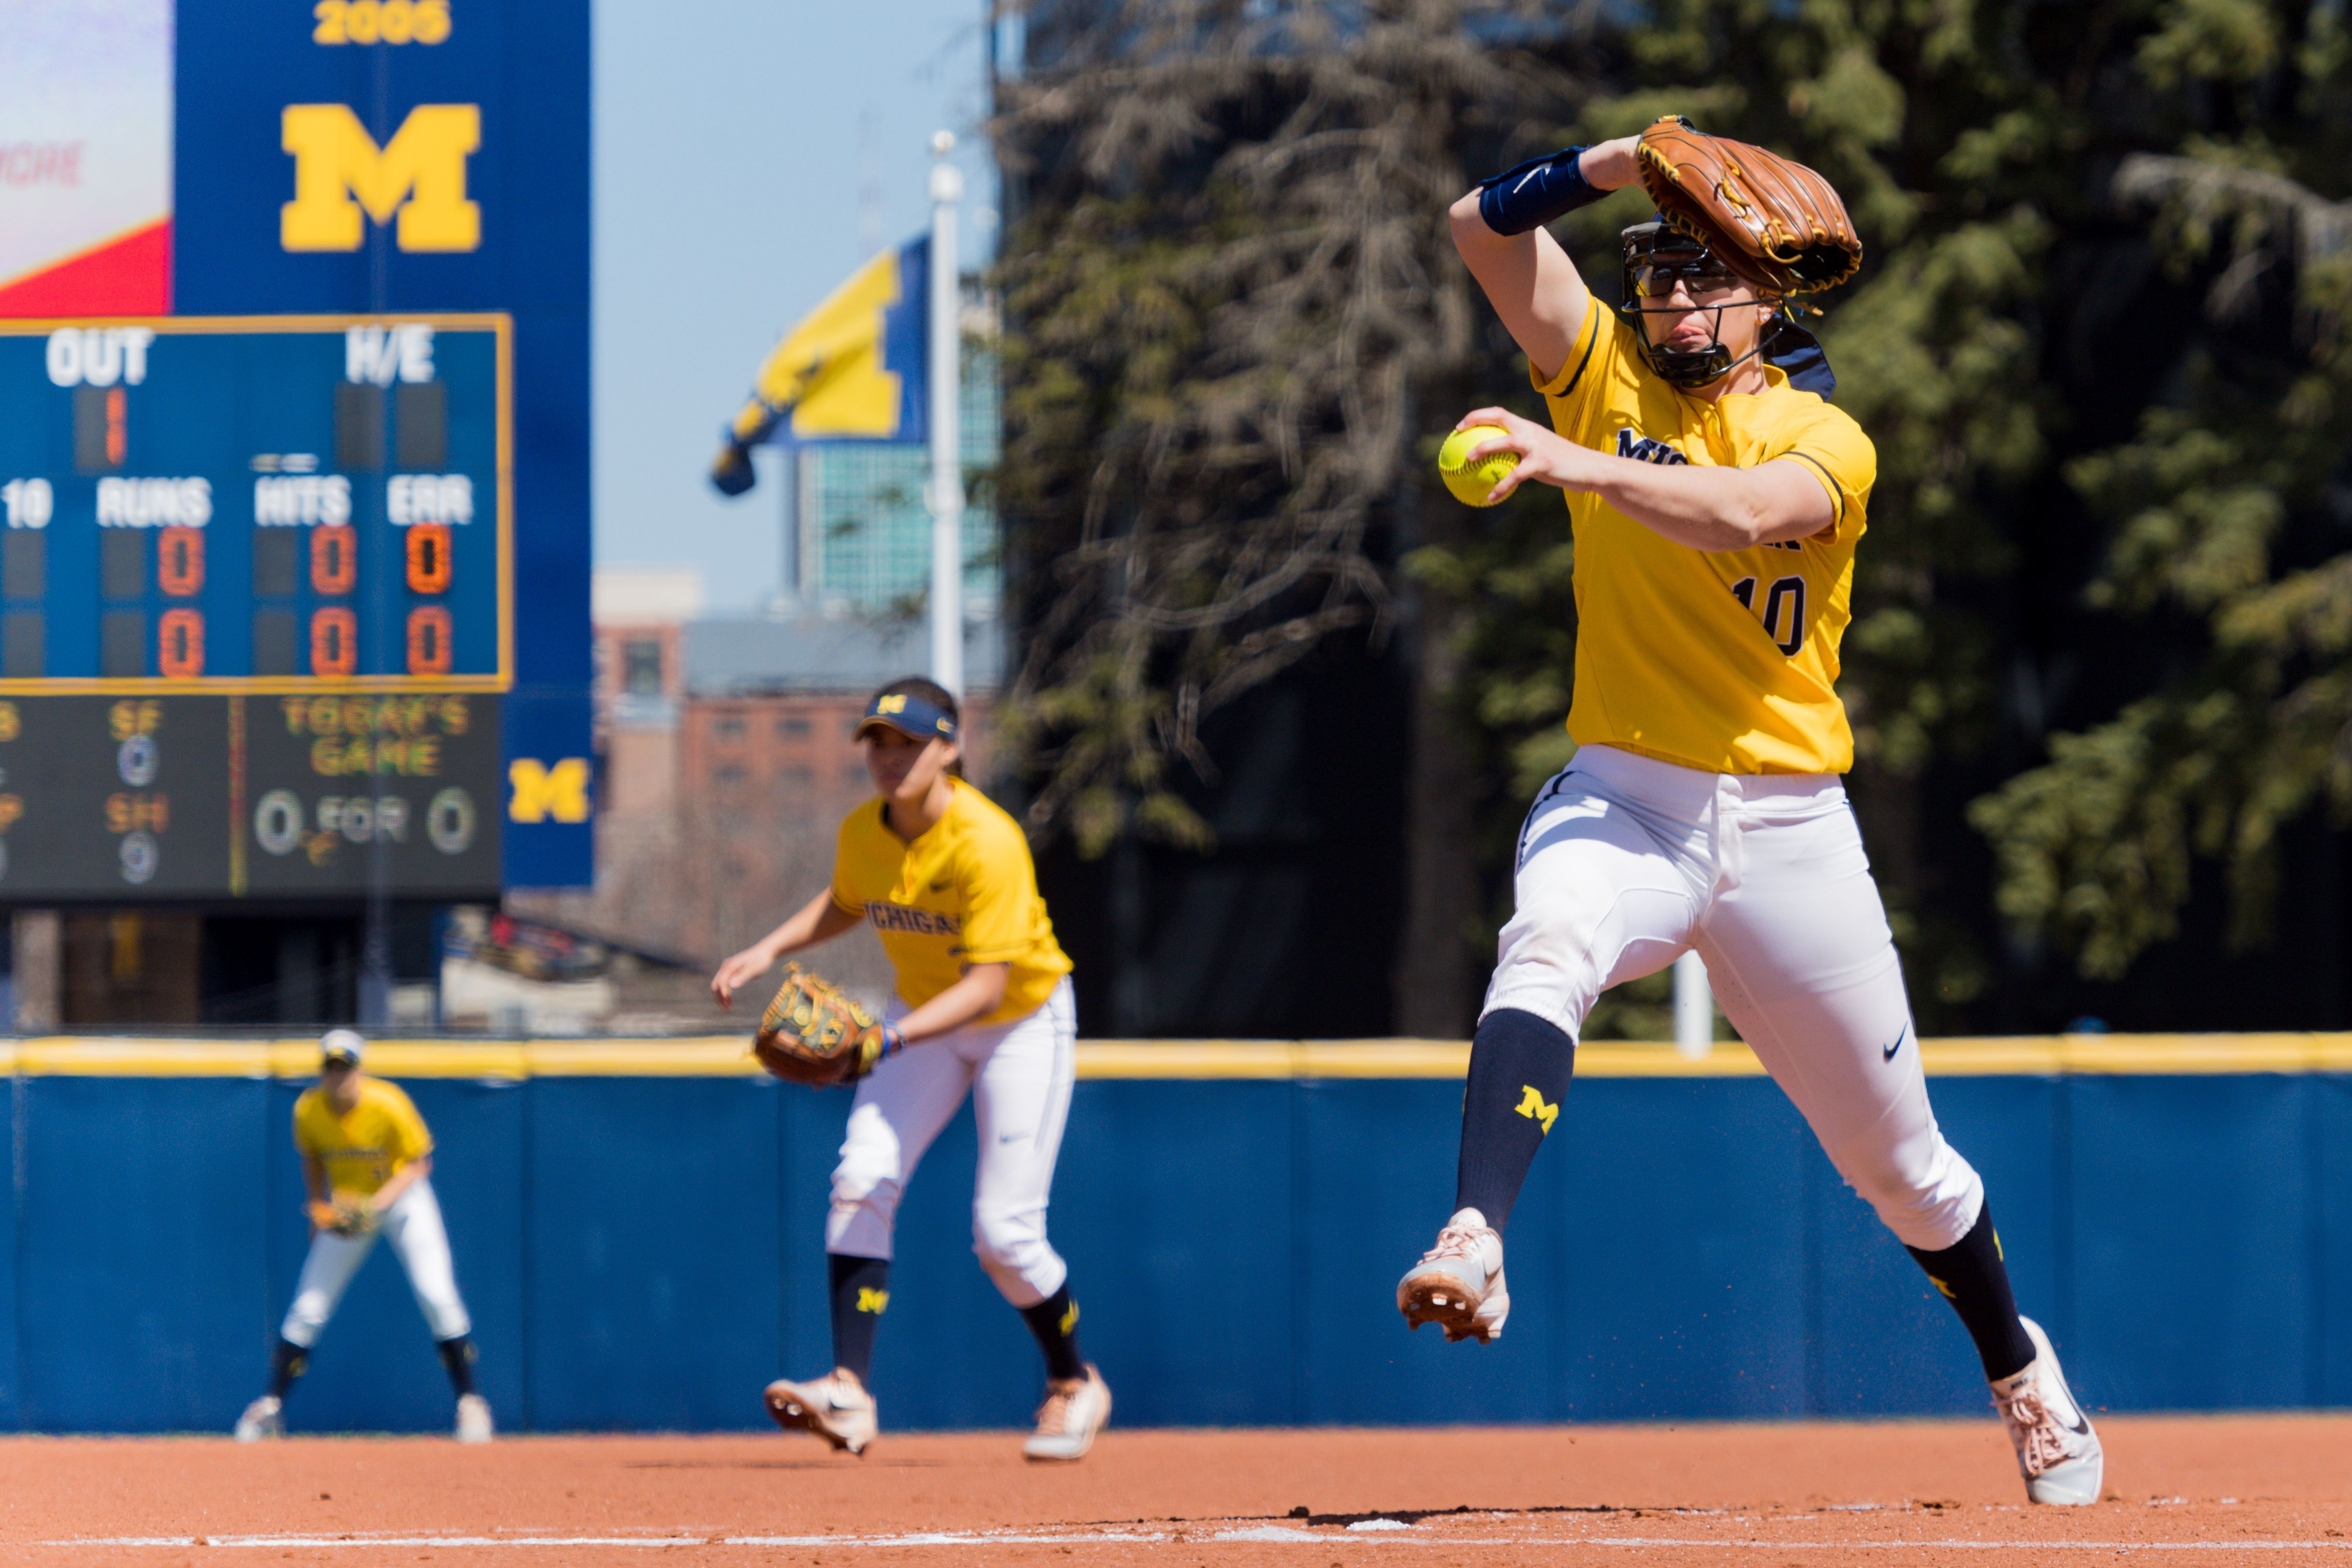 Michigan softball's quest for Super Regional pushed back to Monday